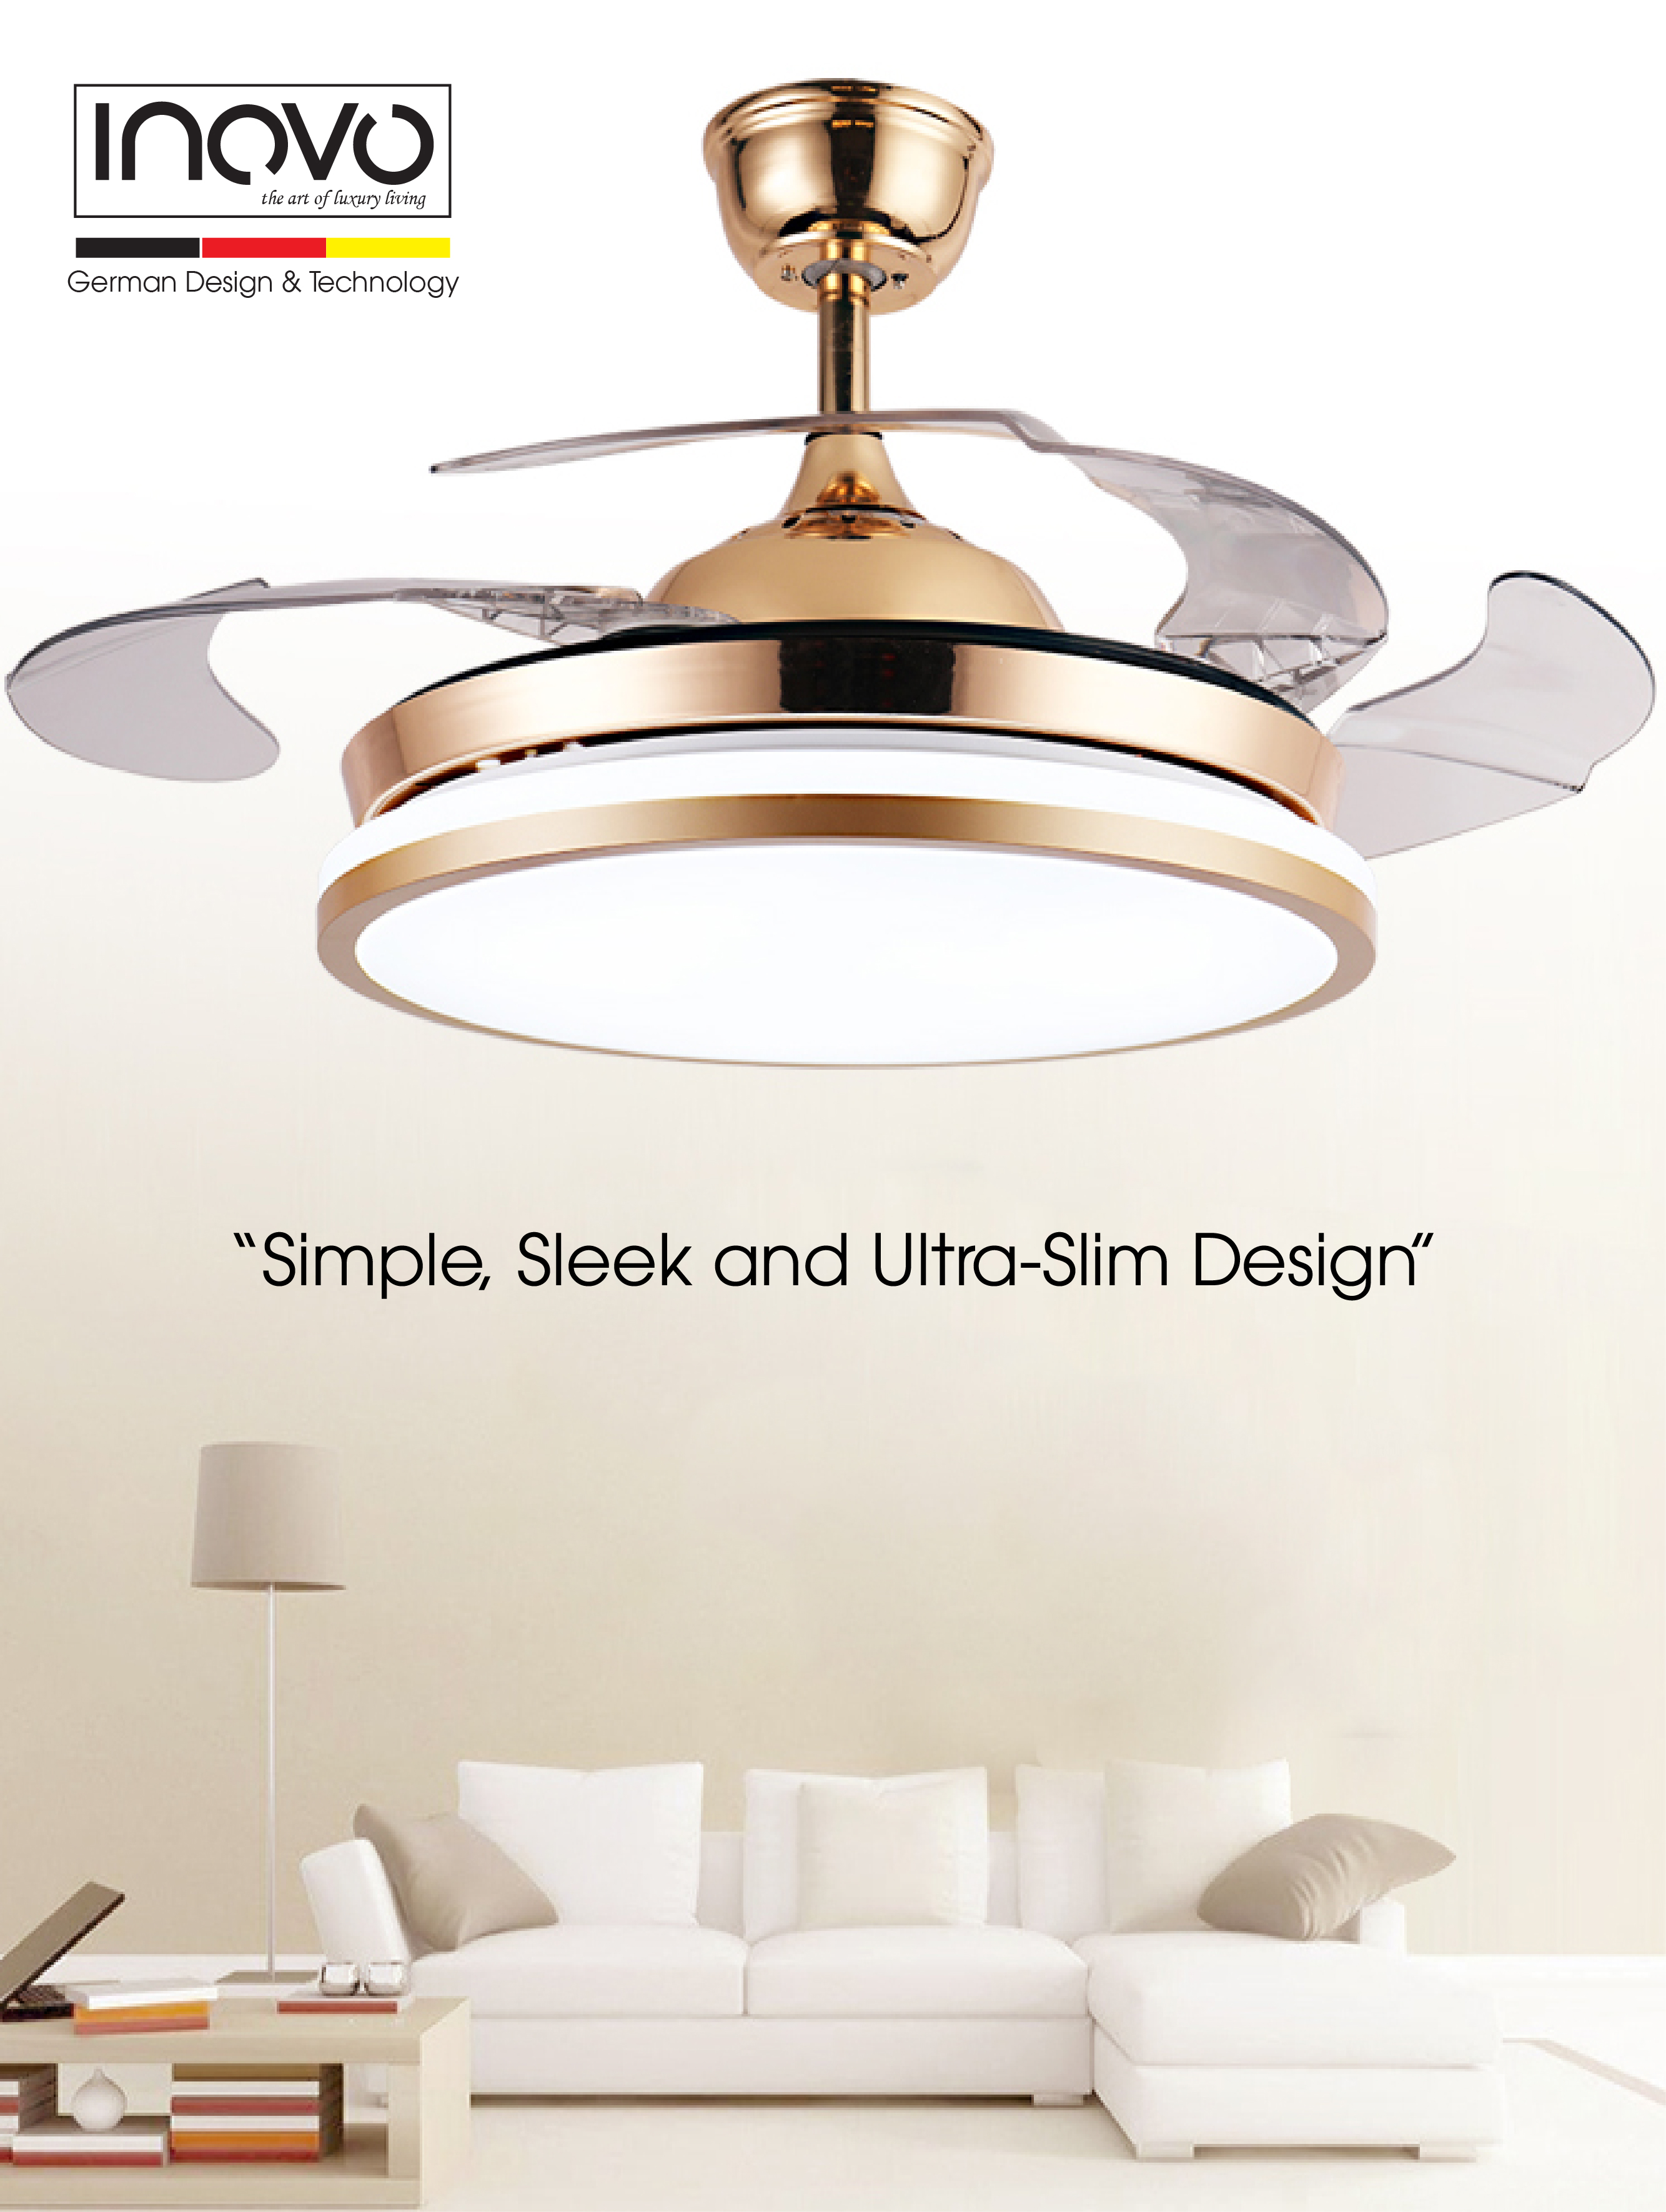 Inovo brilliante hideaway ceiling fan with led light in gold inovo inovo brilliante hideaway is an advanced ceiling fan with unique aesthetics and energy efficient design switched off the traditionally intrusive fan aloadofball Images